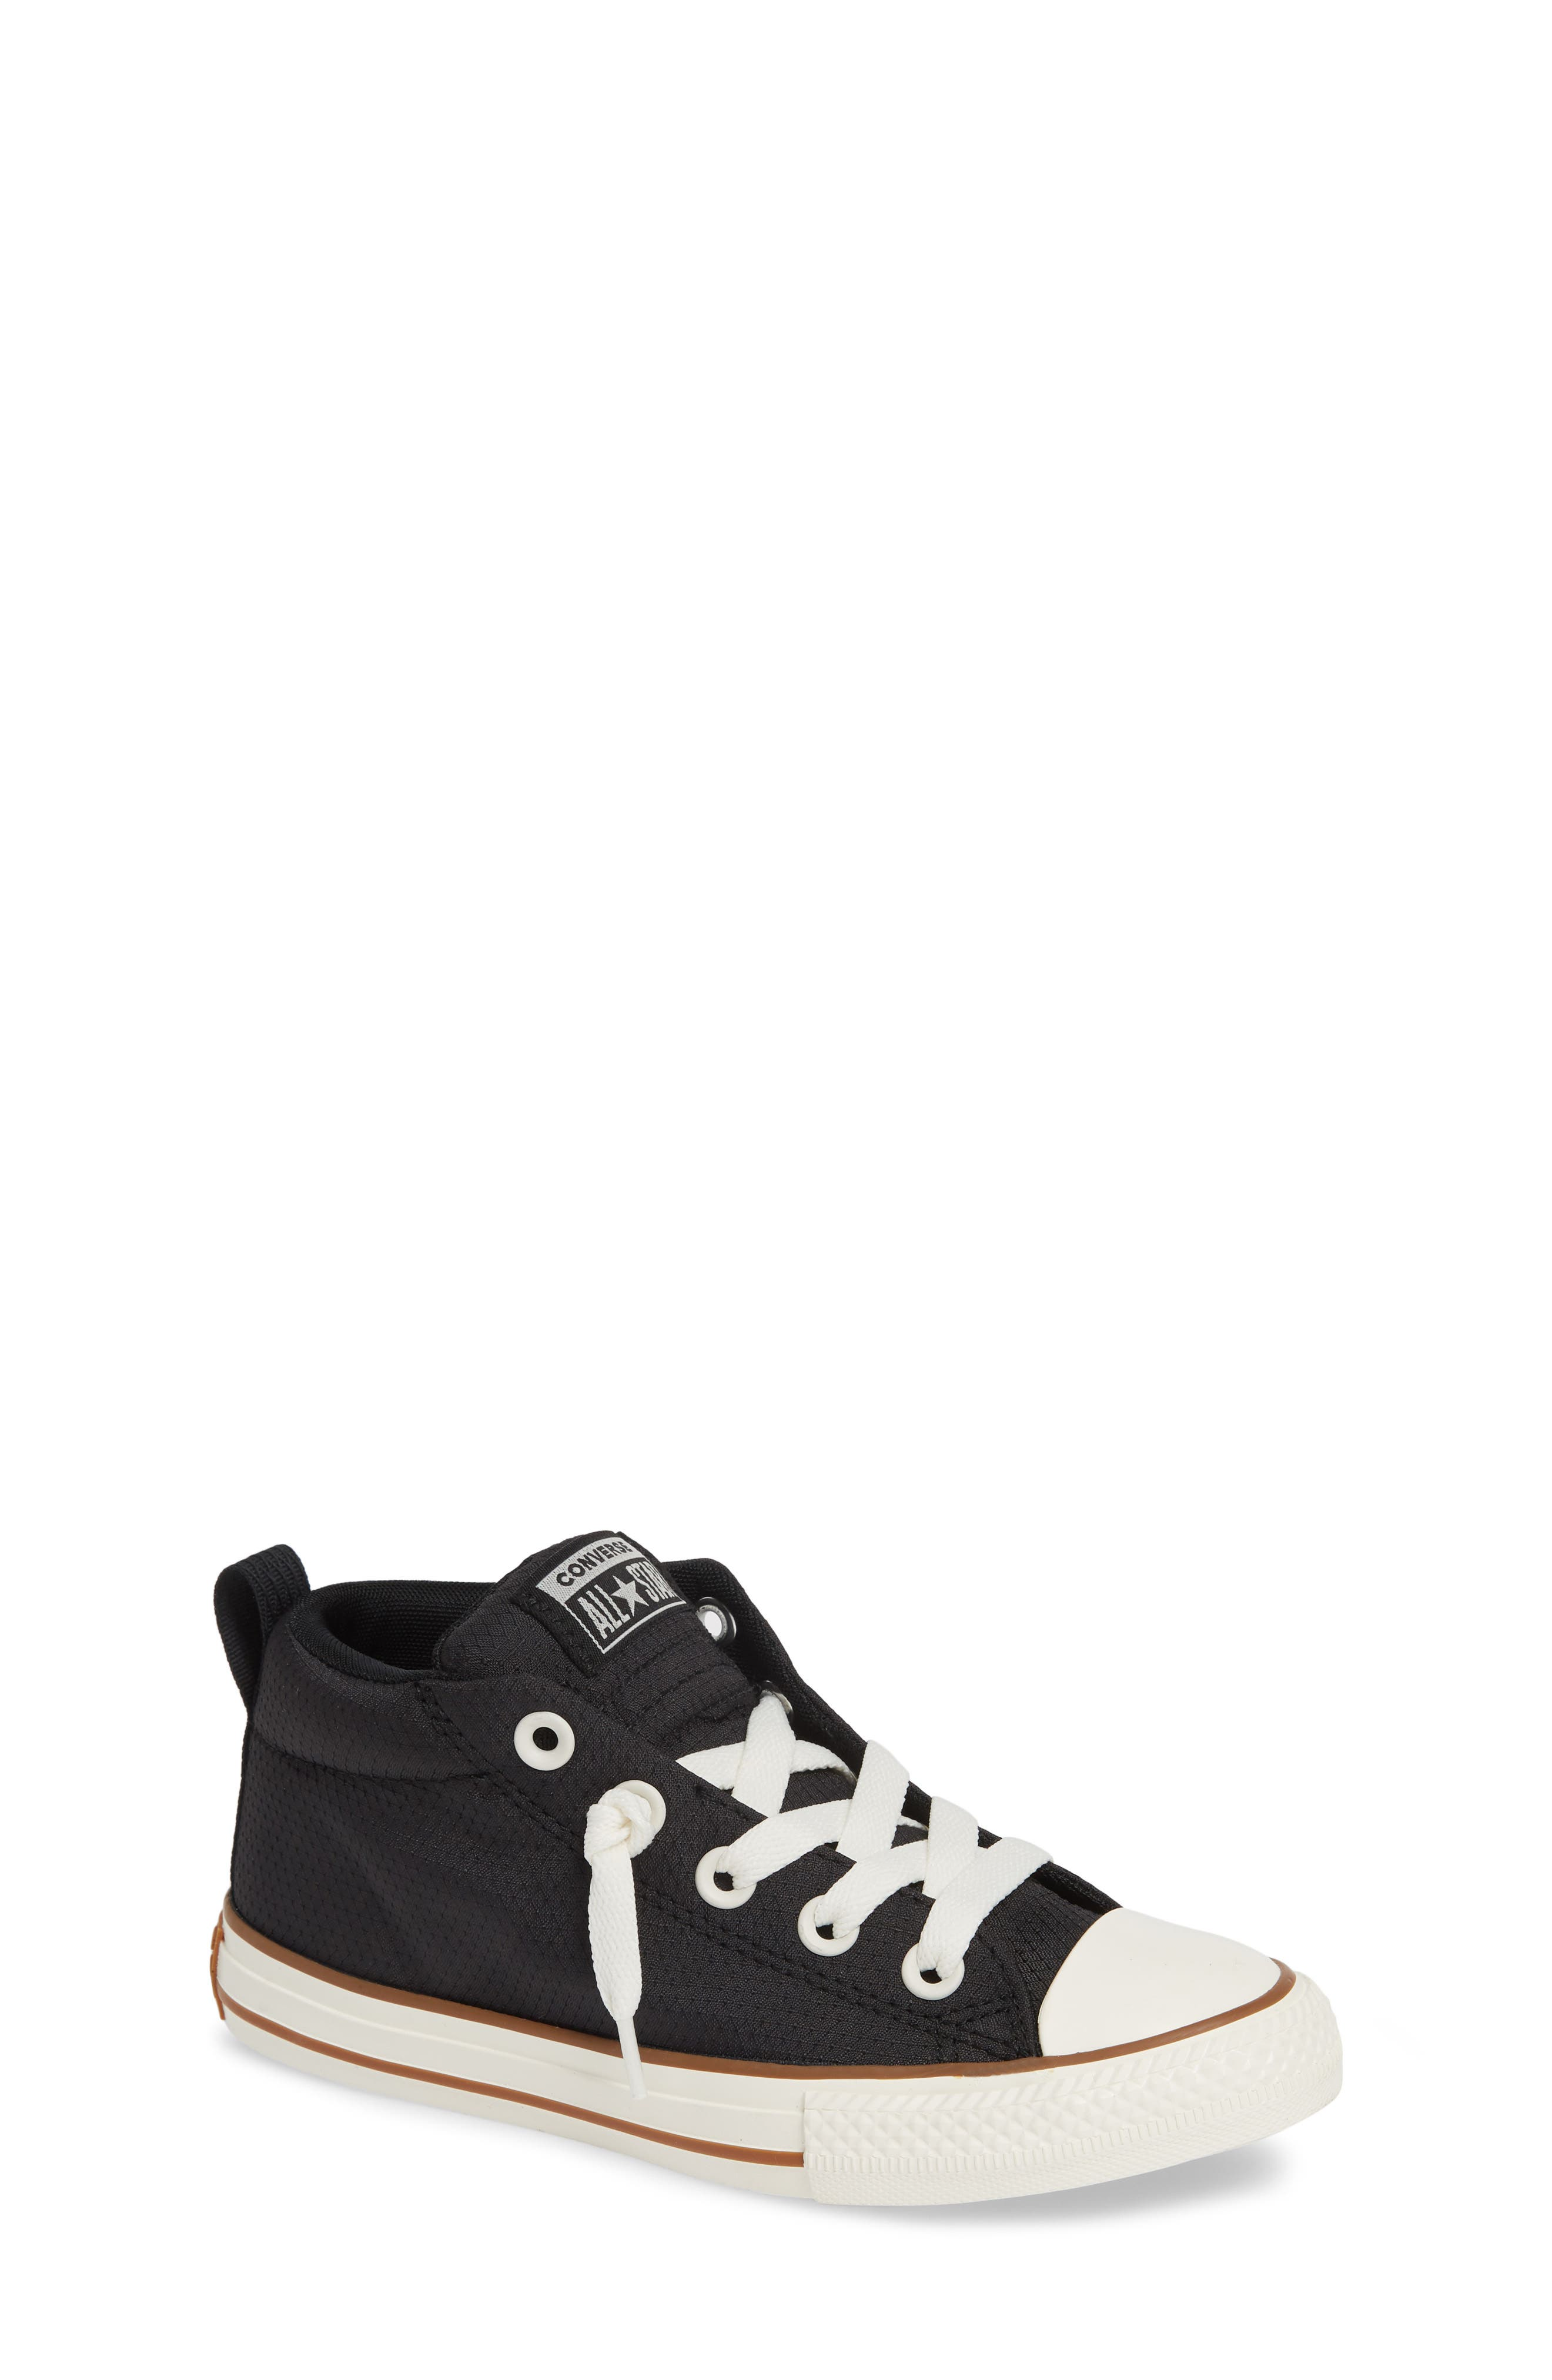 CONVERSE, Chuck Taylor<sup>®</sup> All Star<sup>®</sup> Street Mid Top Sneaker, Main thumbnail 1, color, 002